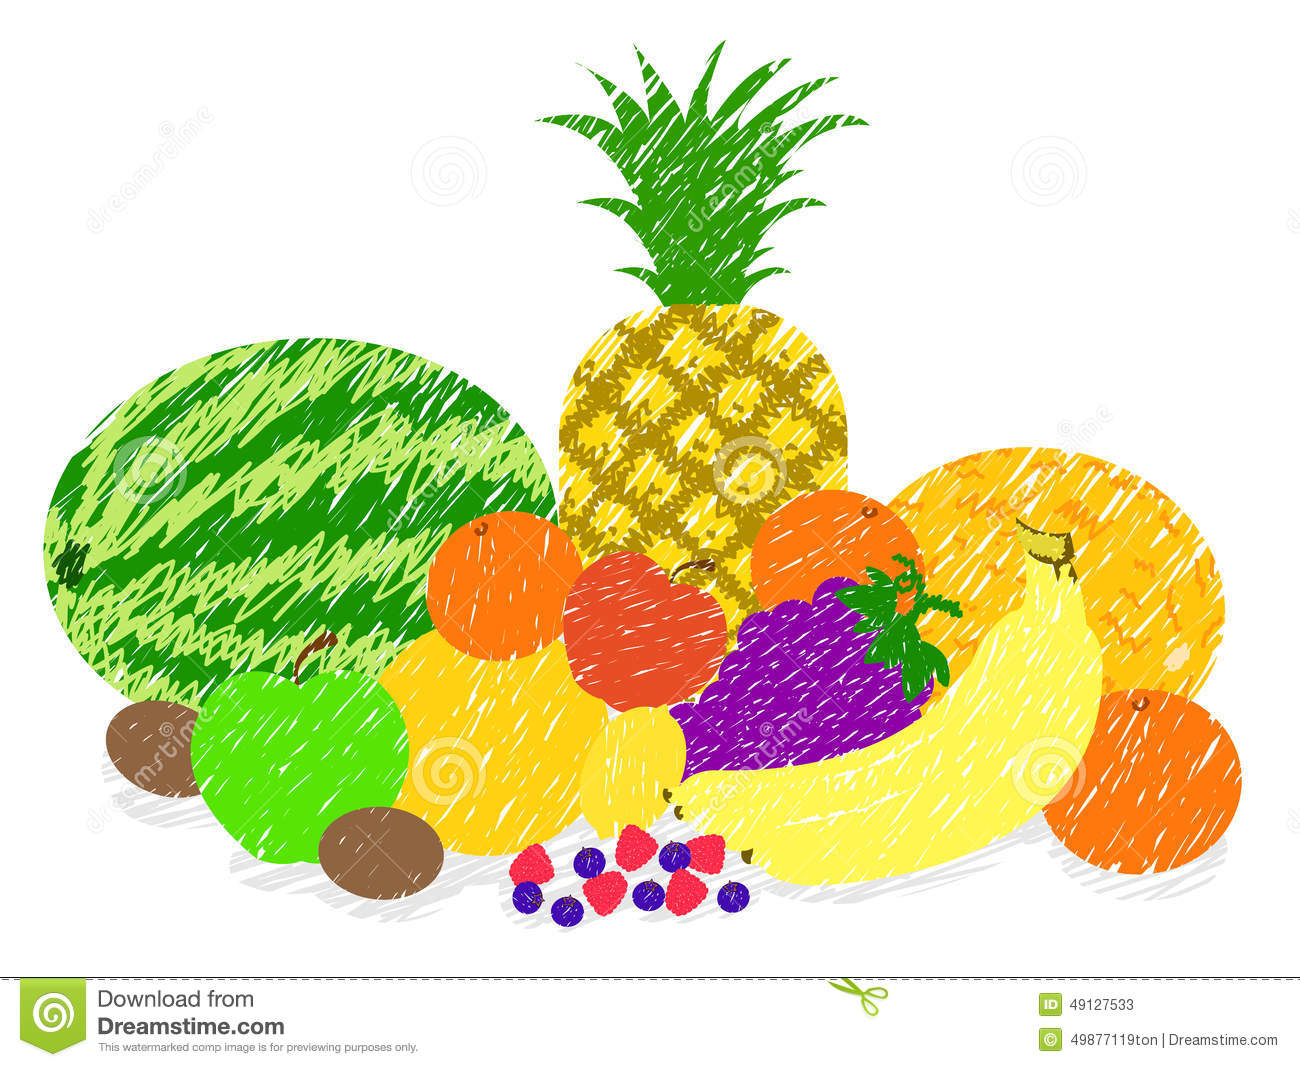 Mixed fruits clipart - Clipground | 1300 x 1067 jpeg 221kB